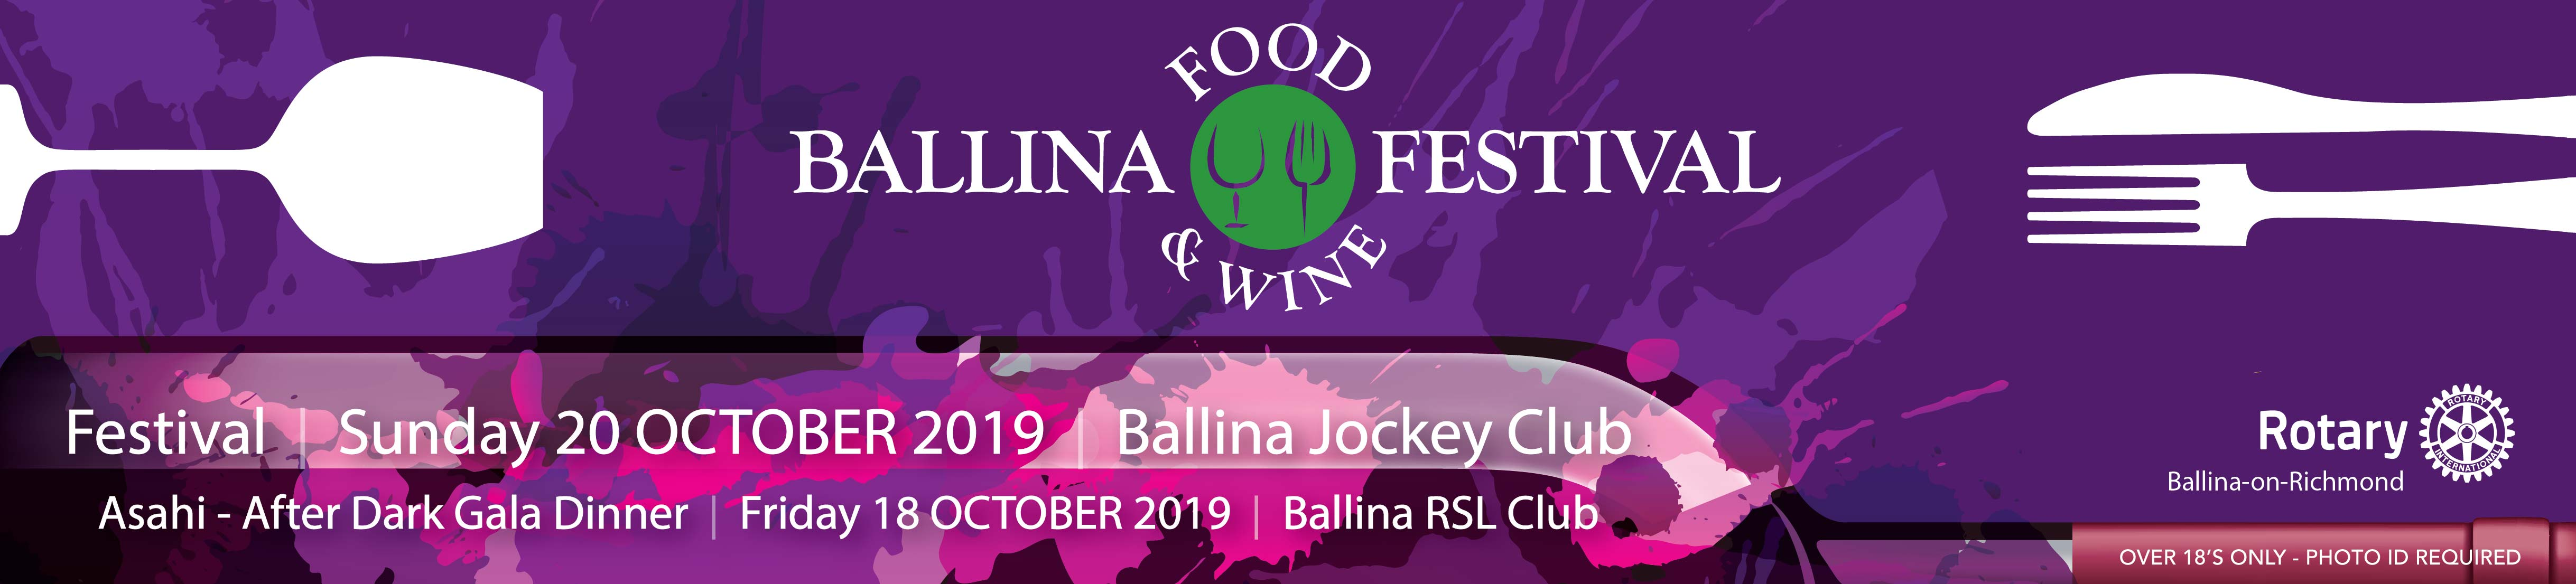 Ballina Food and Wine Festival